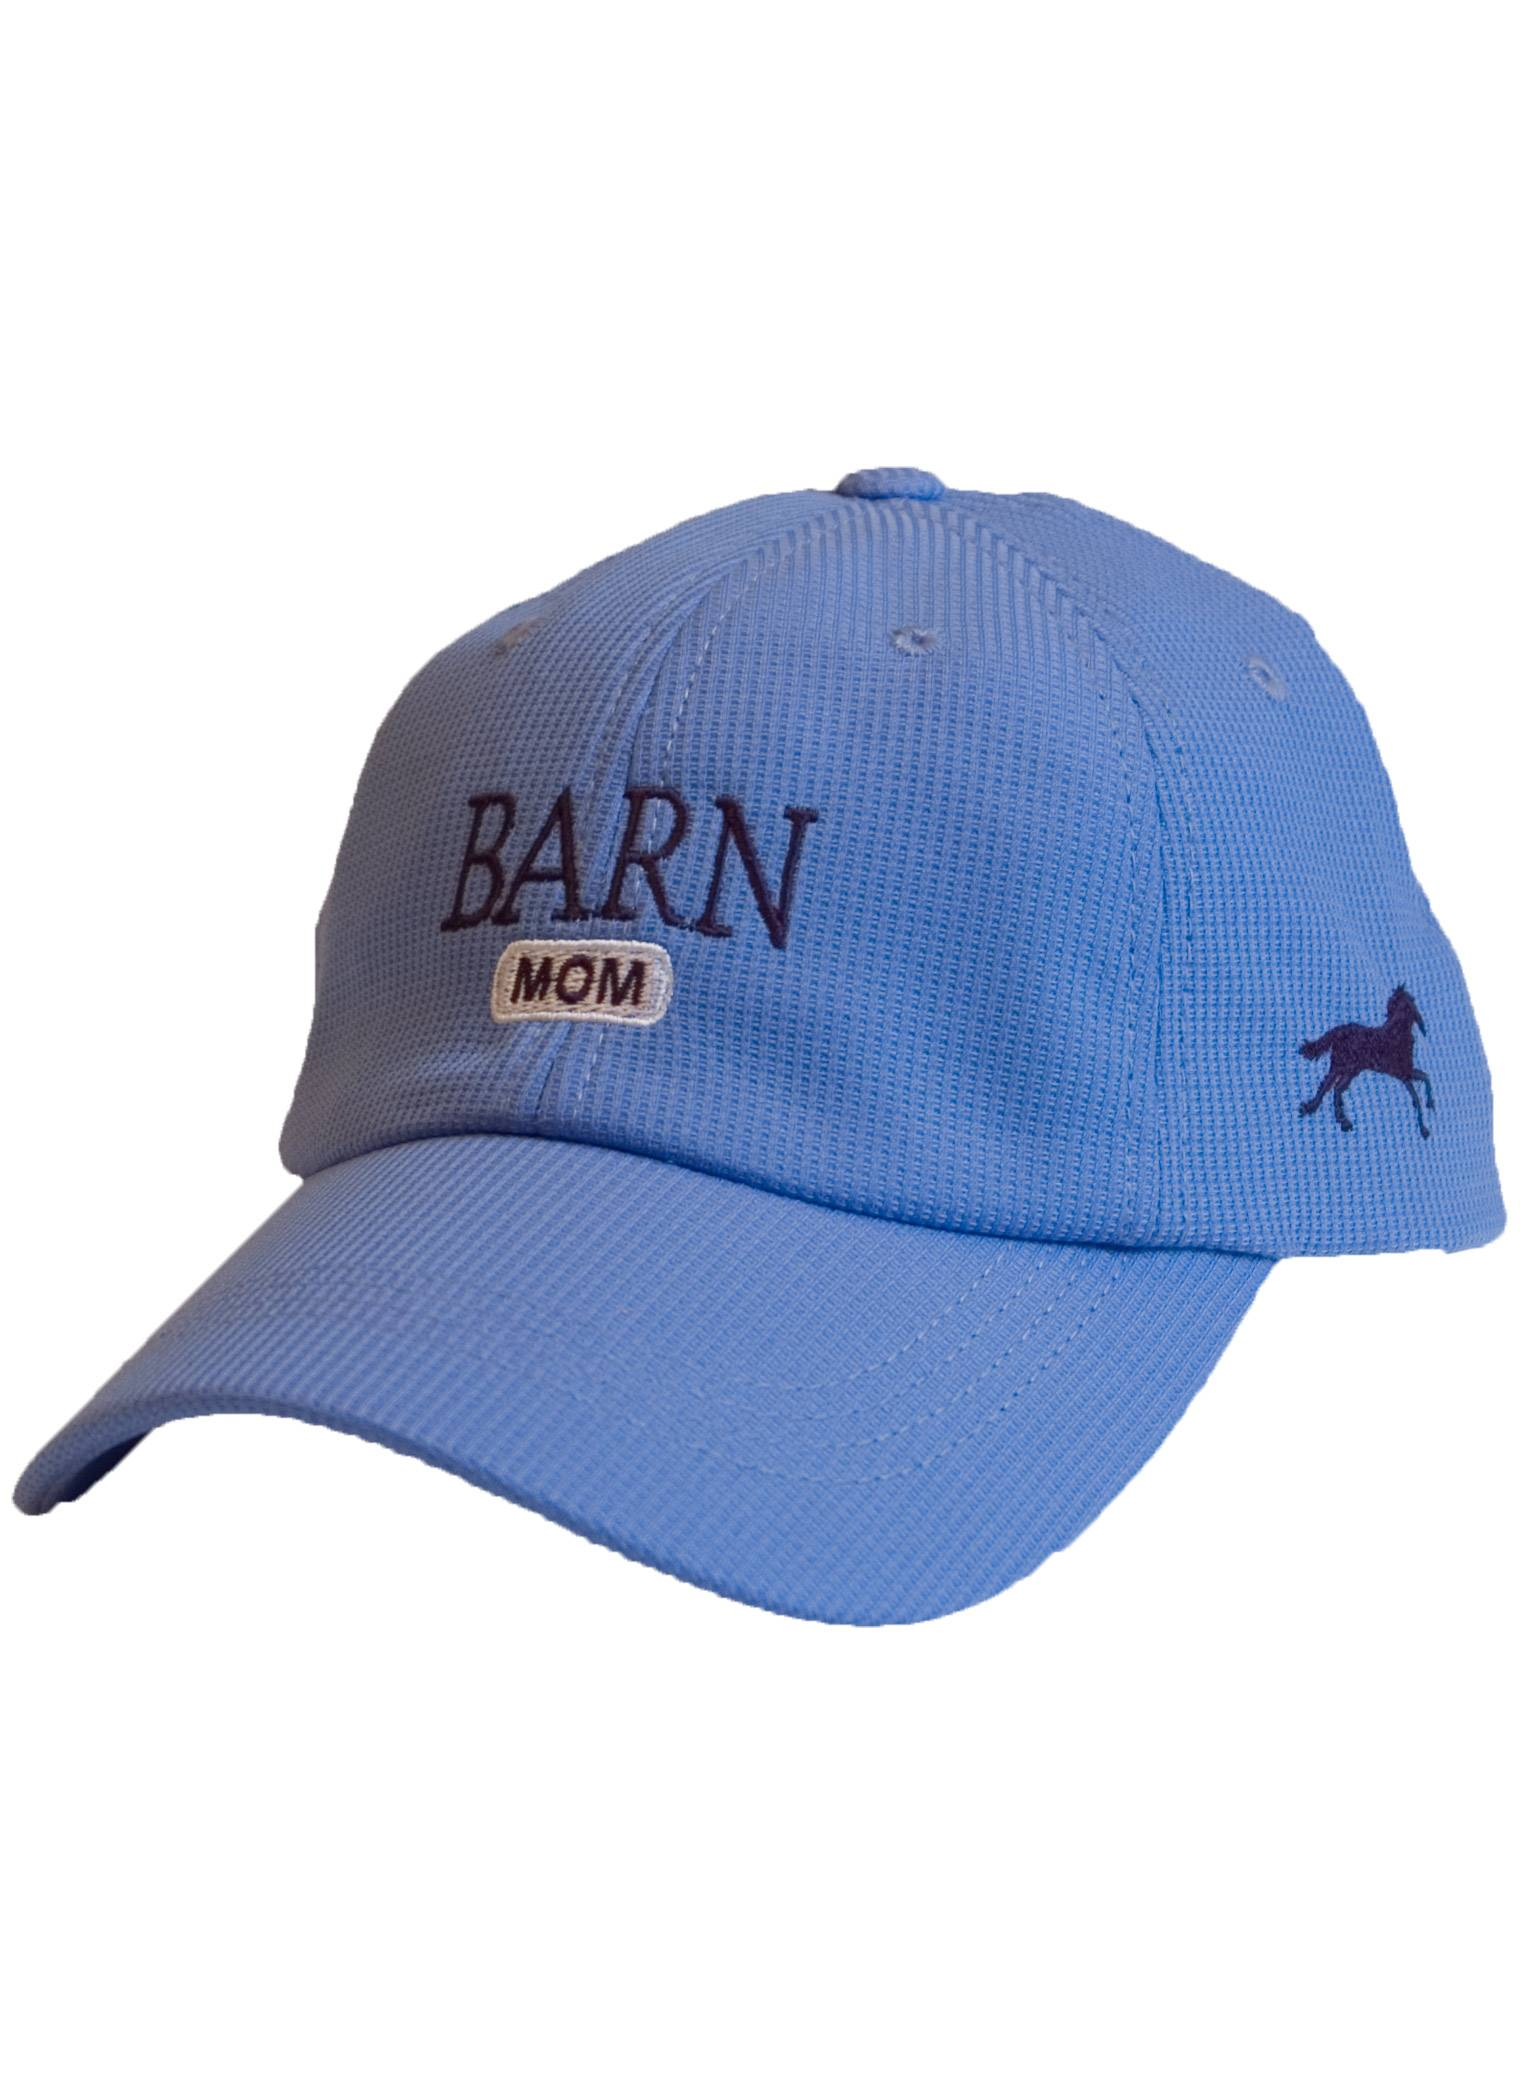 Stirrups Ladies Barn Mom Embroidered Wicking Adj. Cap